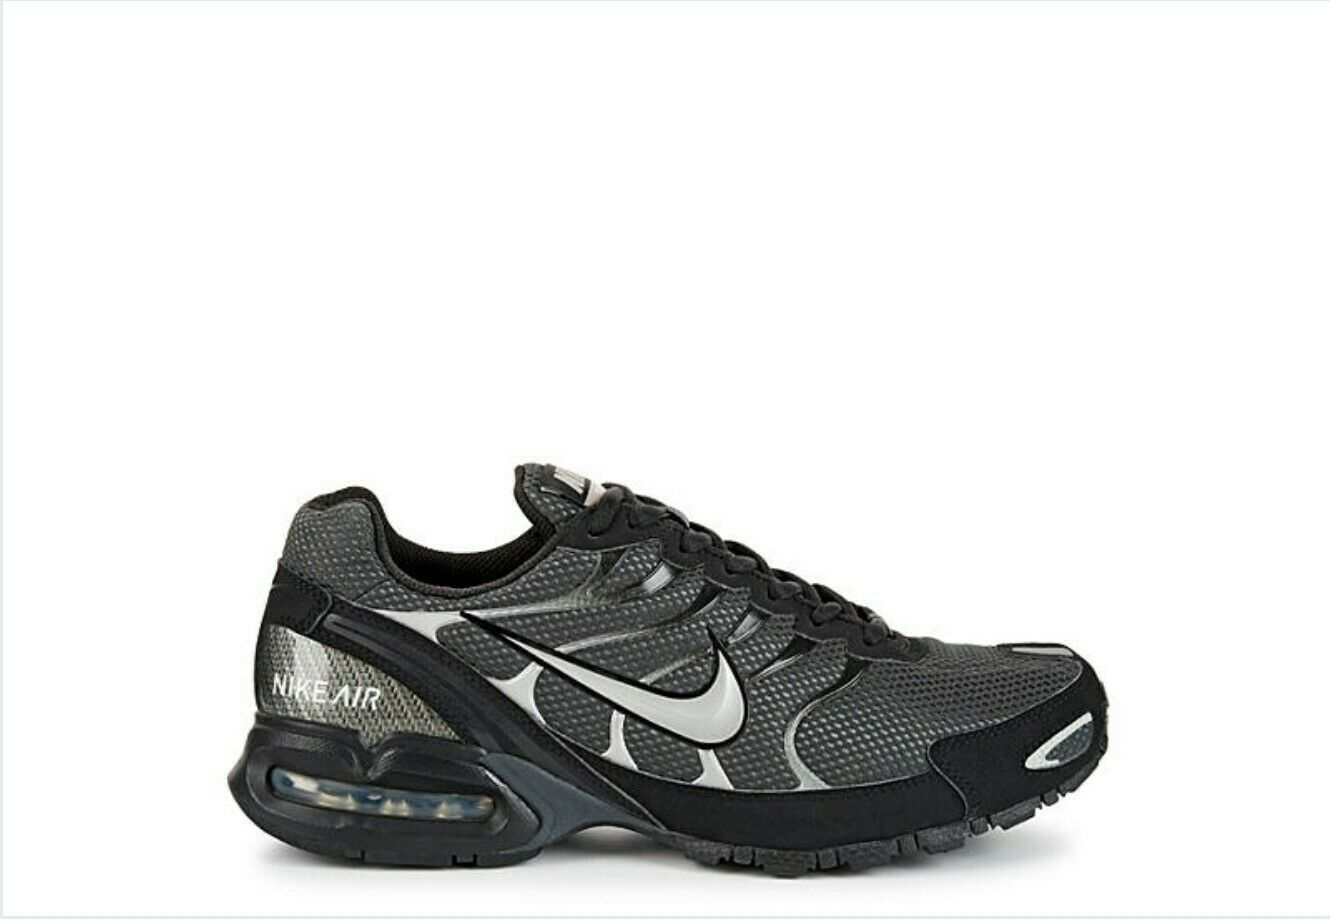 Nike Air Max Torch 4 Running Cross Training Shoes SNEAKERS